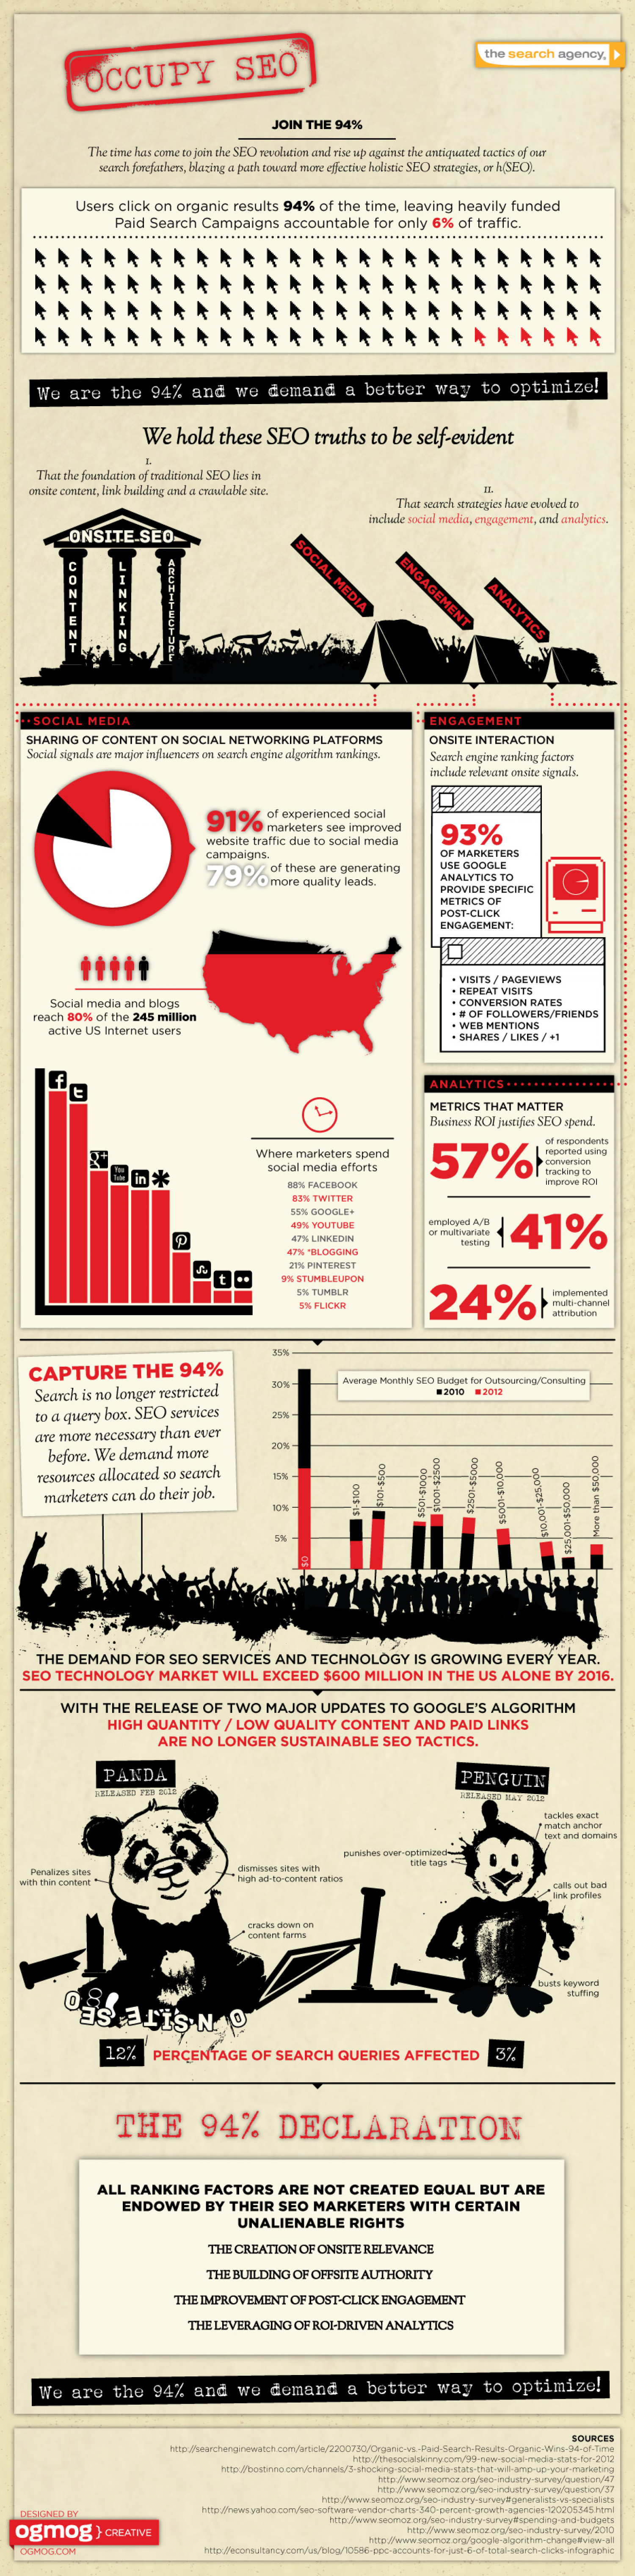 Occupy SEO Infographic